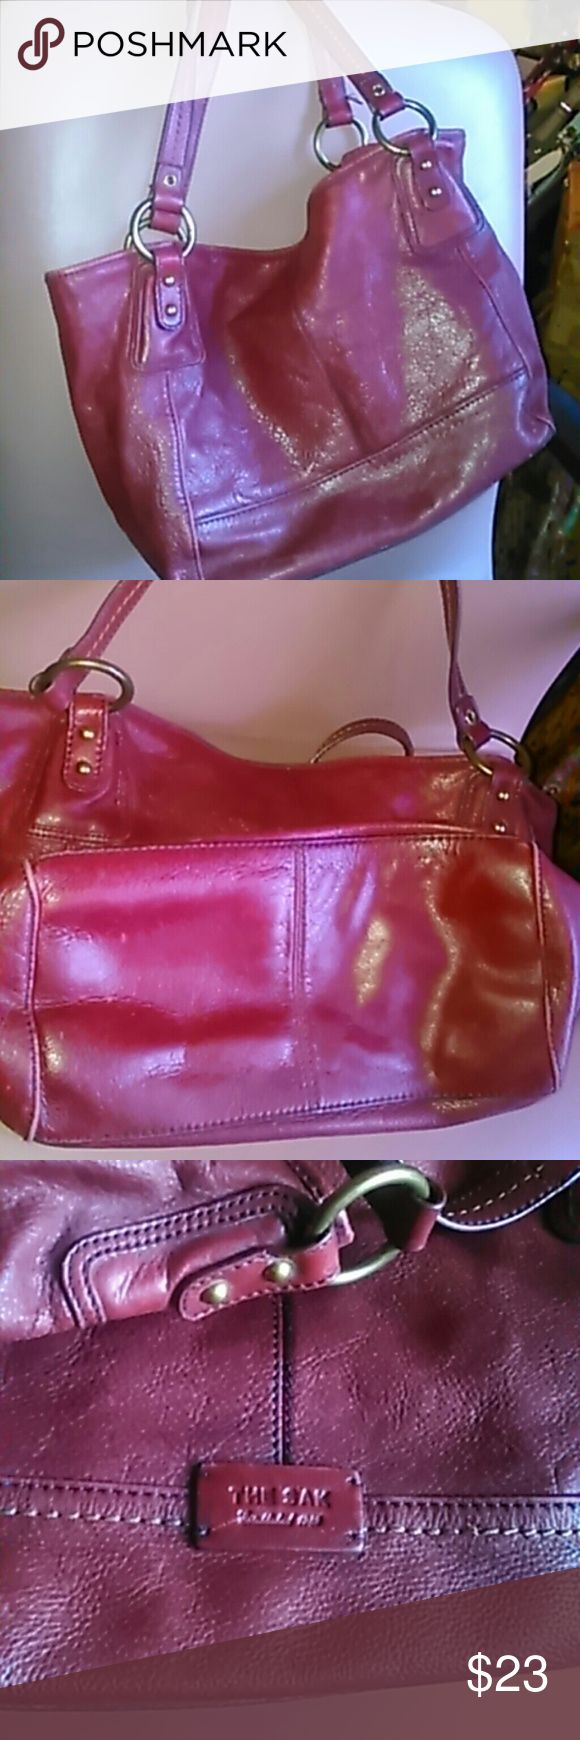 "The Sak maroon leather purse floral lining 10 x 17 X 6"", pre-owned, no damages, wash before use. The Sak  Bags Shoulder Bags"